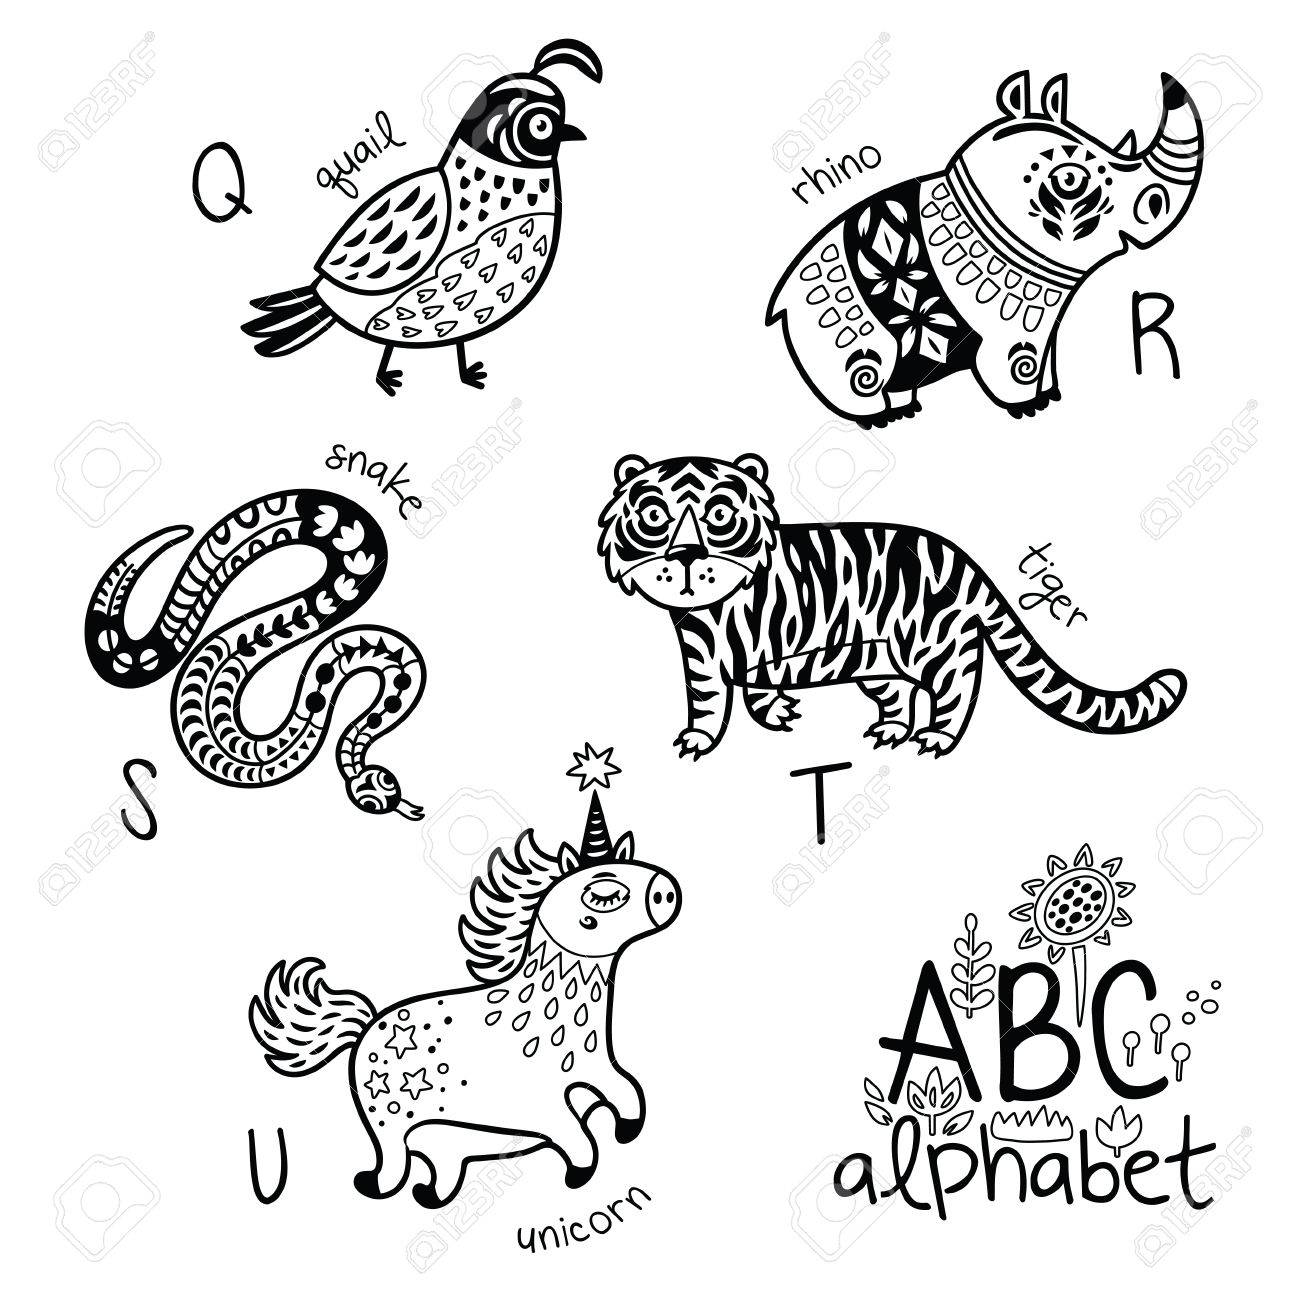 Animals Alphabet Q - U For Children Vector Coloring Page Royalty ...